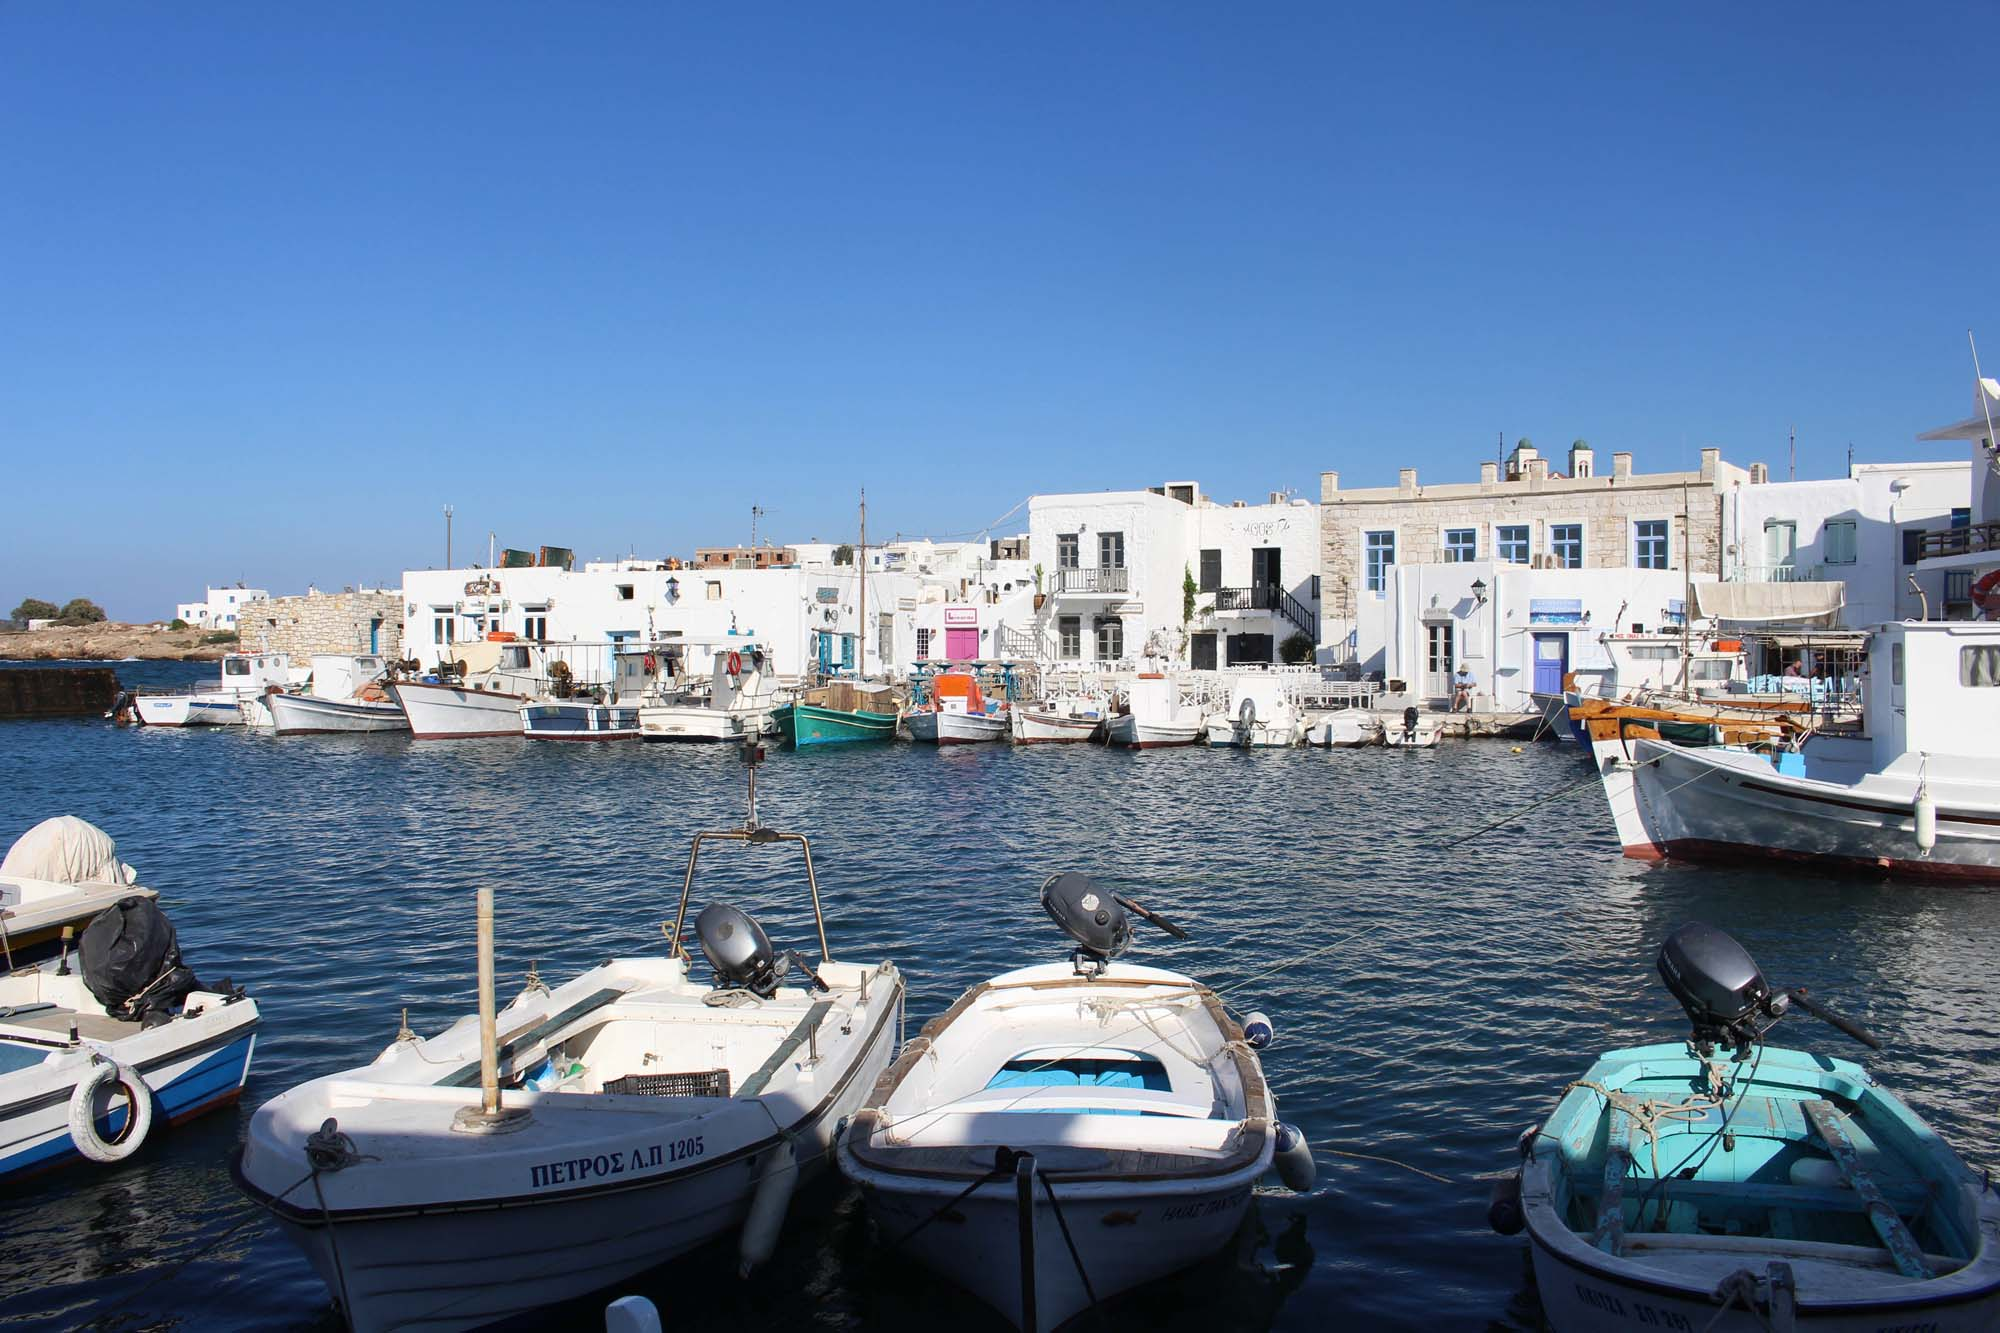 greece-paros-travel-linstantflo-27-sur-35